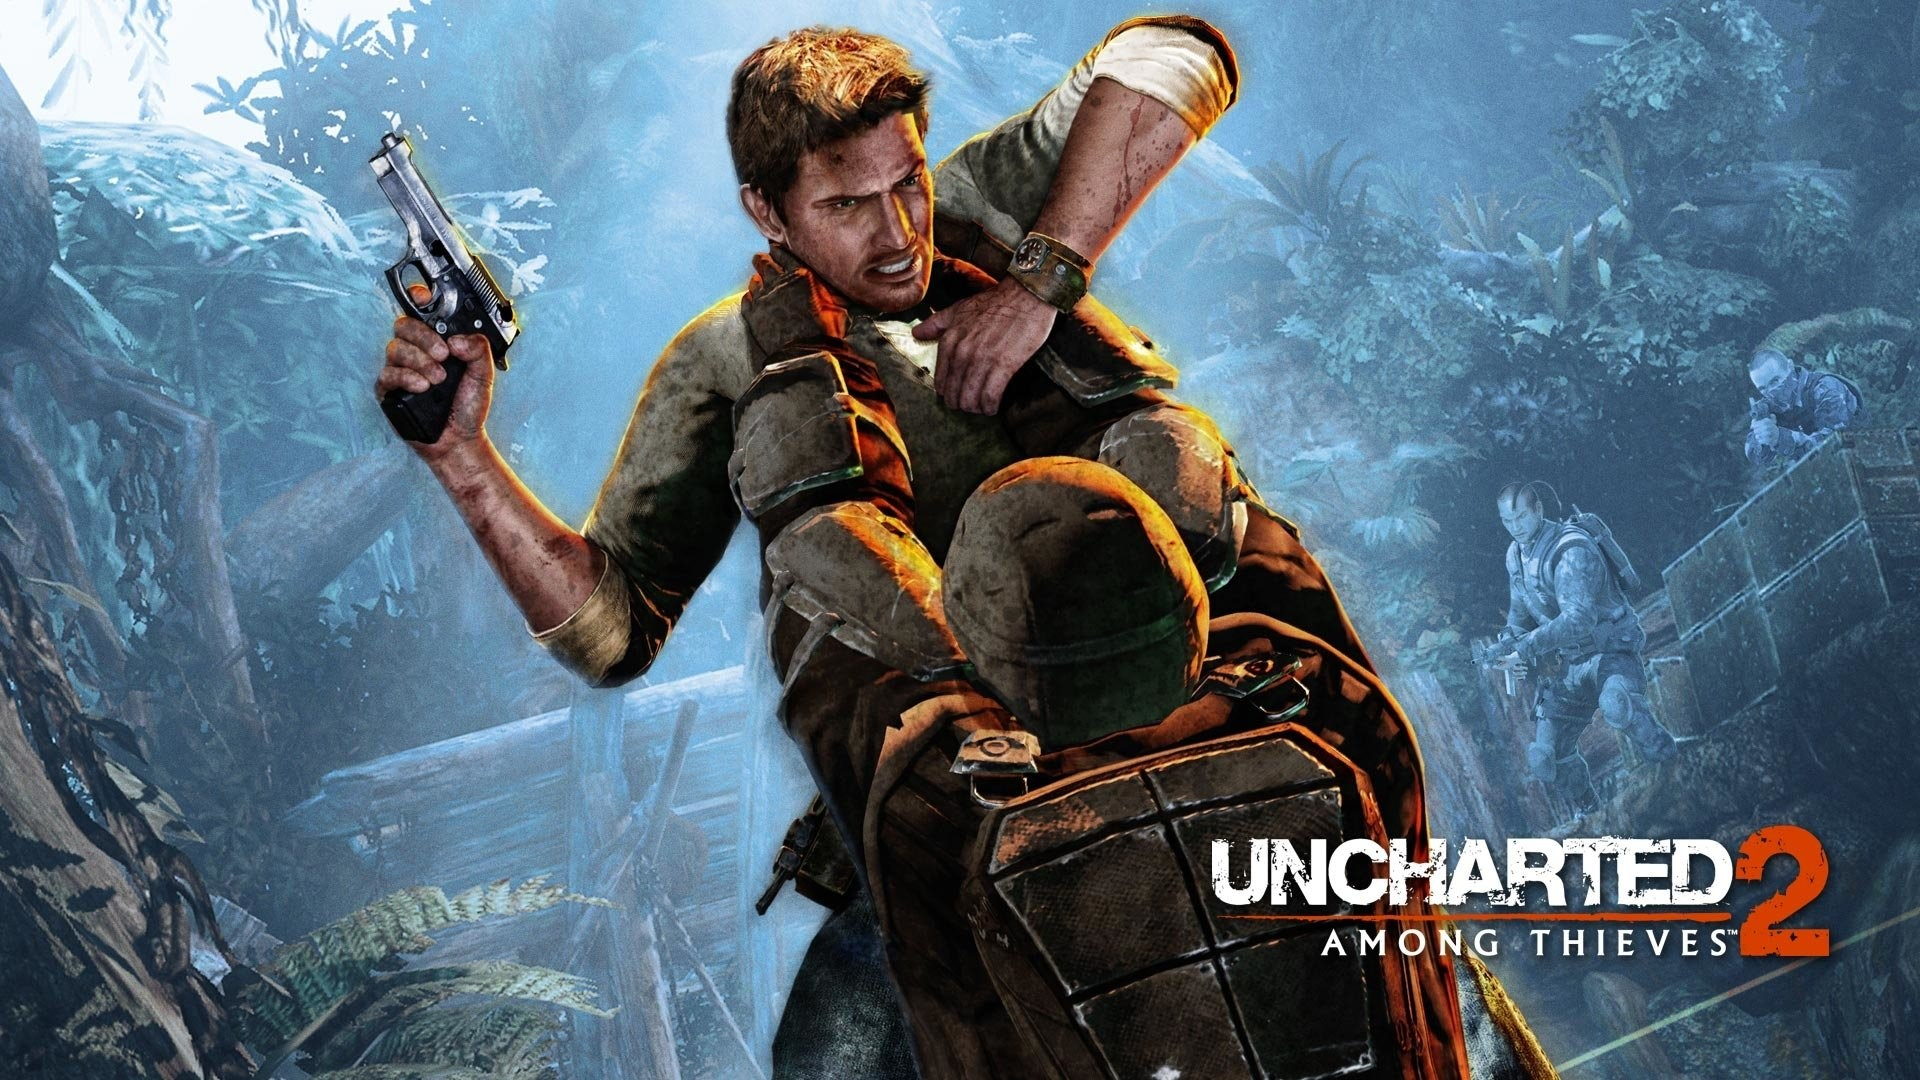 1920x1080 Video Game - Uncharted 2: Among Thieves Wallpaper